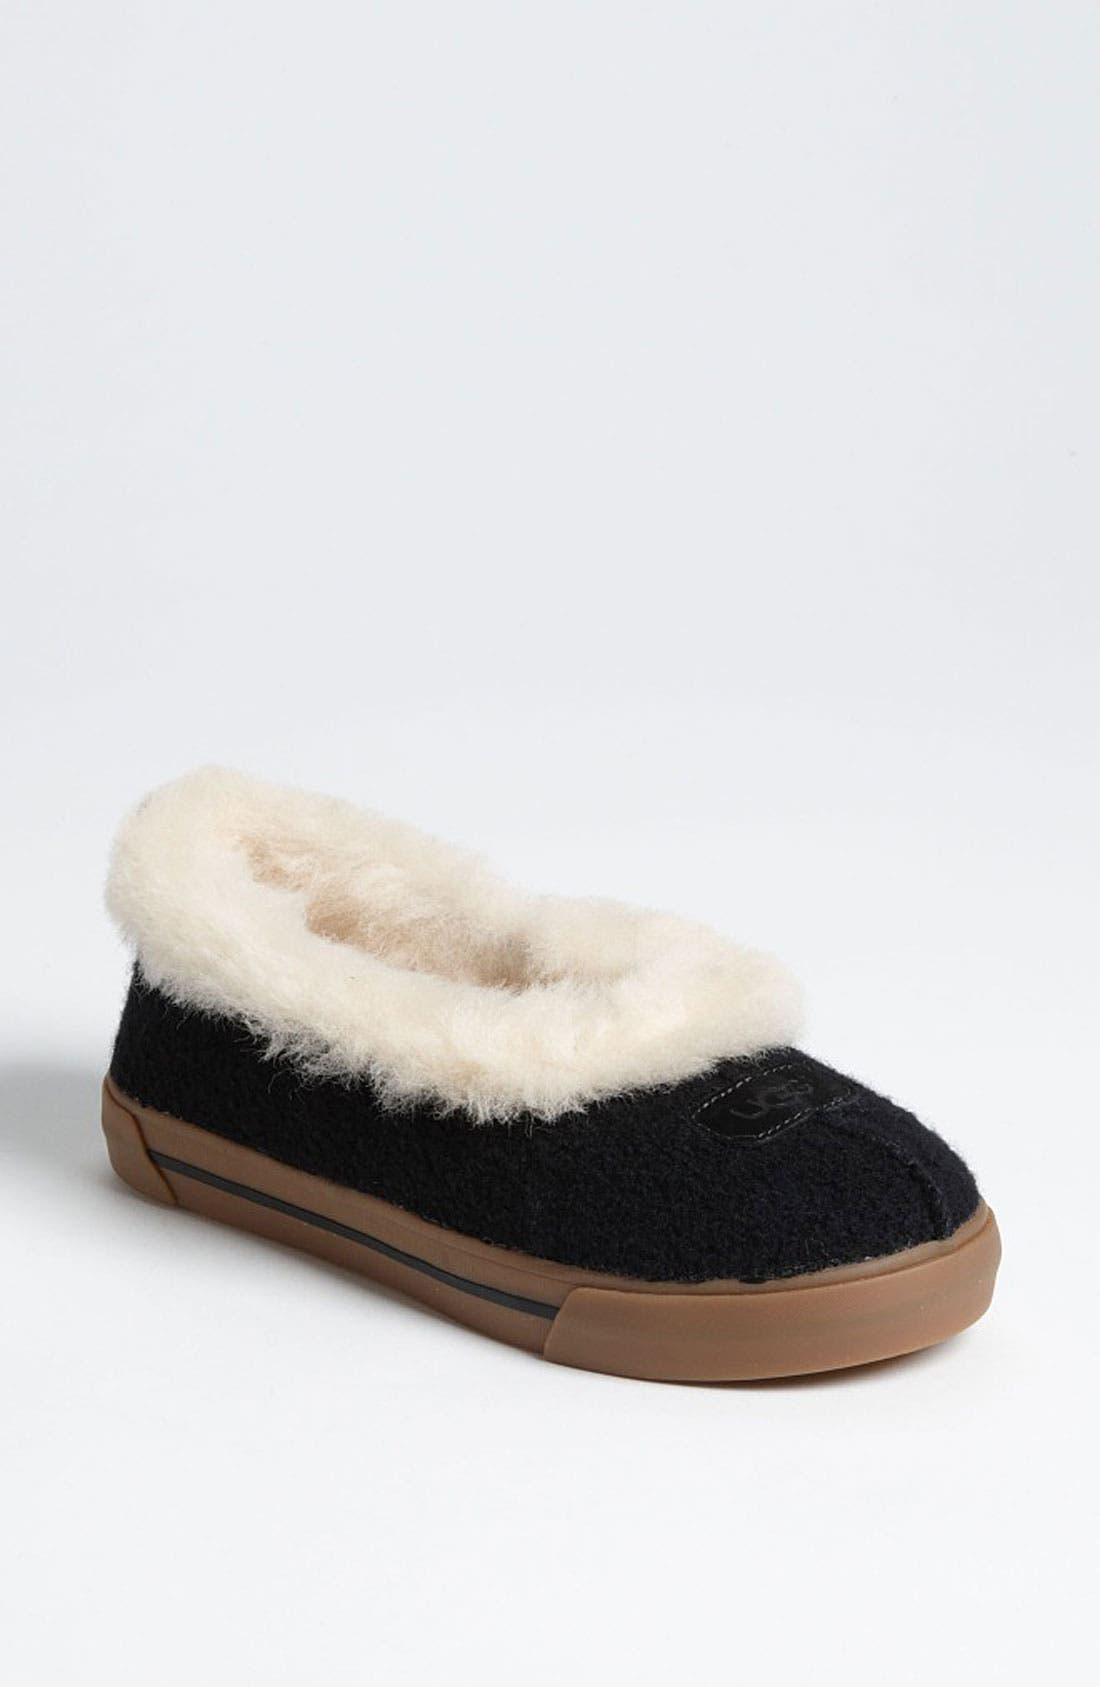 Alternate Image 1 Selected - UGG® Australia 'Rylan Wool' Slipper (Women)